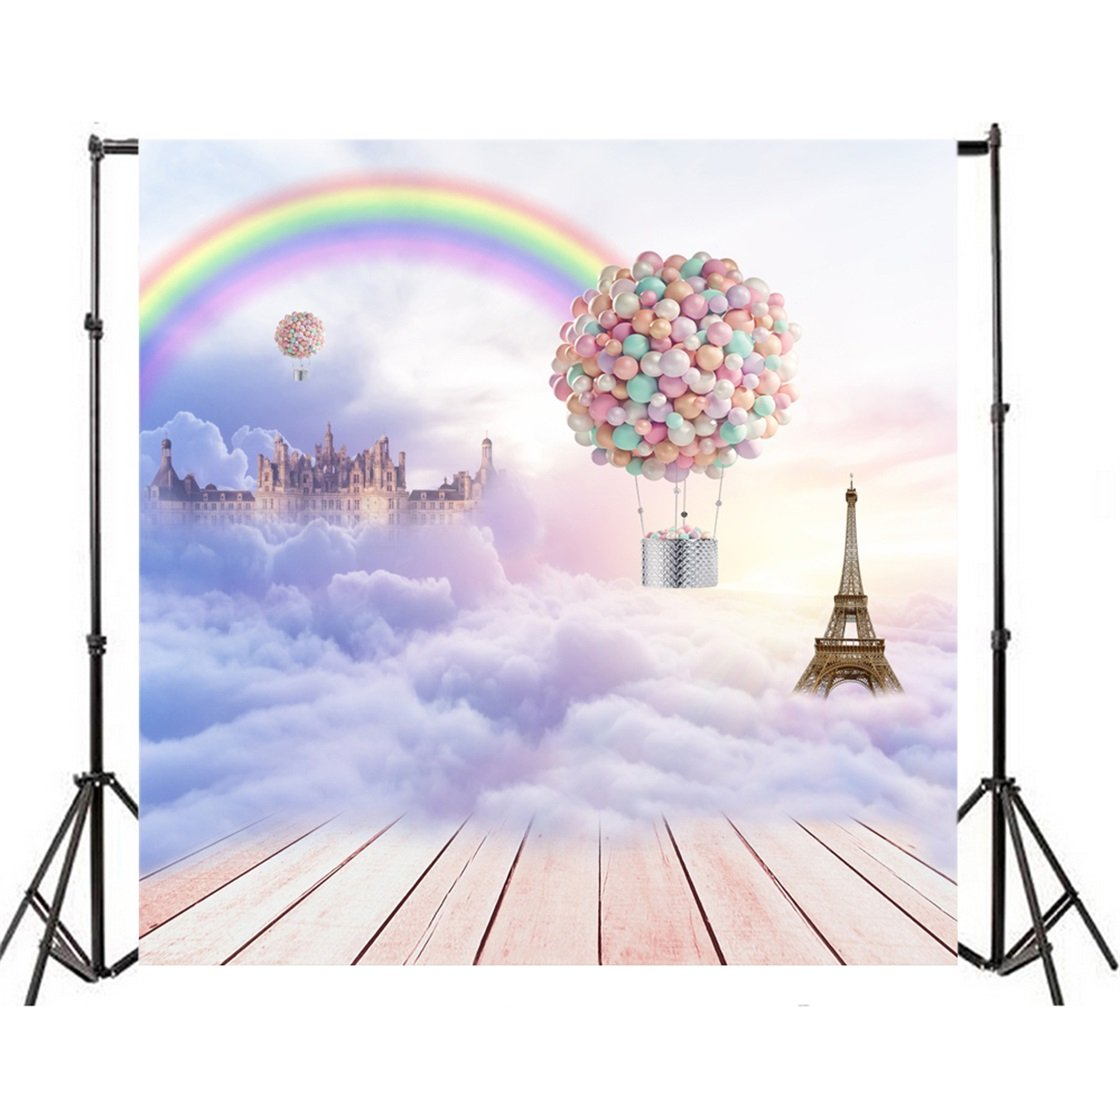 Aofoto 8x8ft sweet hot air balloon photography studio backdrop heavenly rainbow eiffel tower background romantic sky clouds wedding photo shoot props video